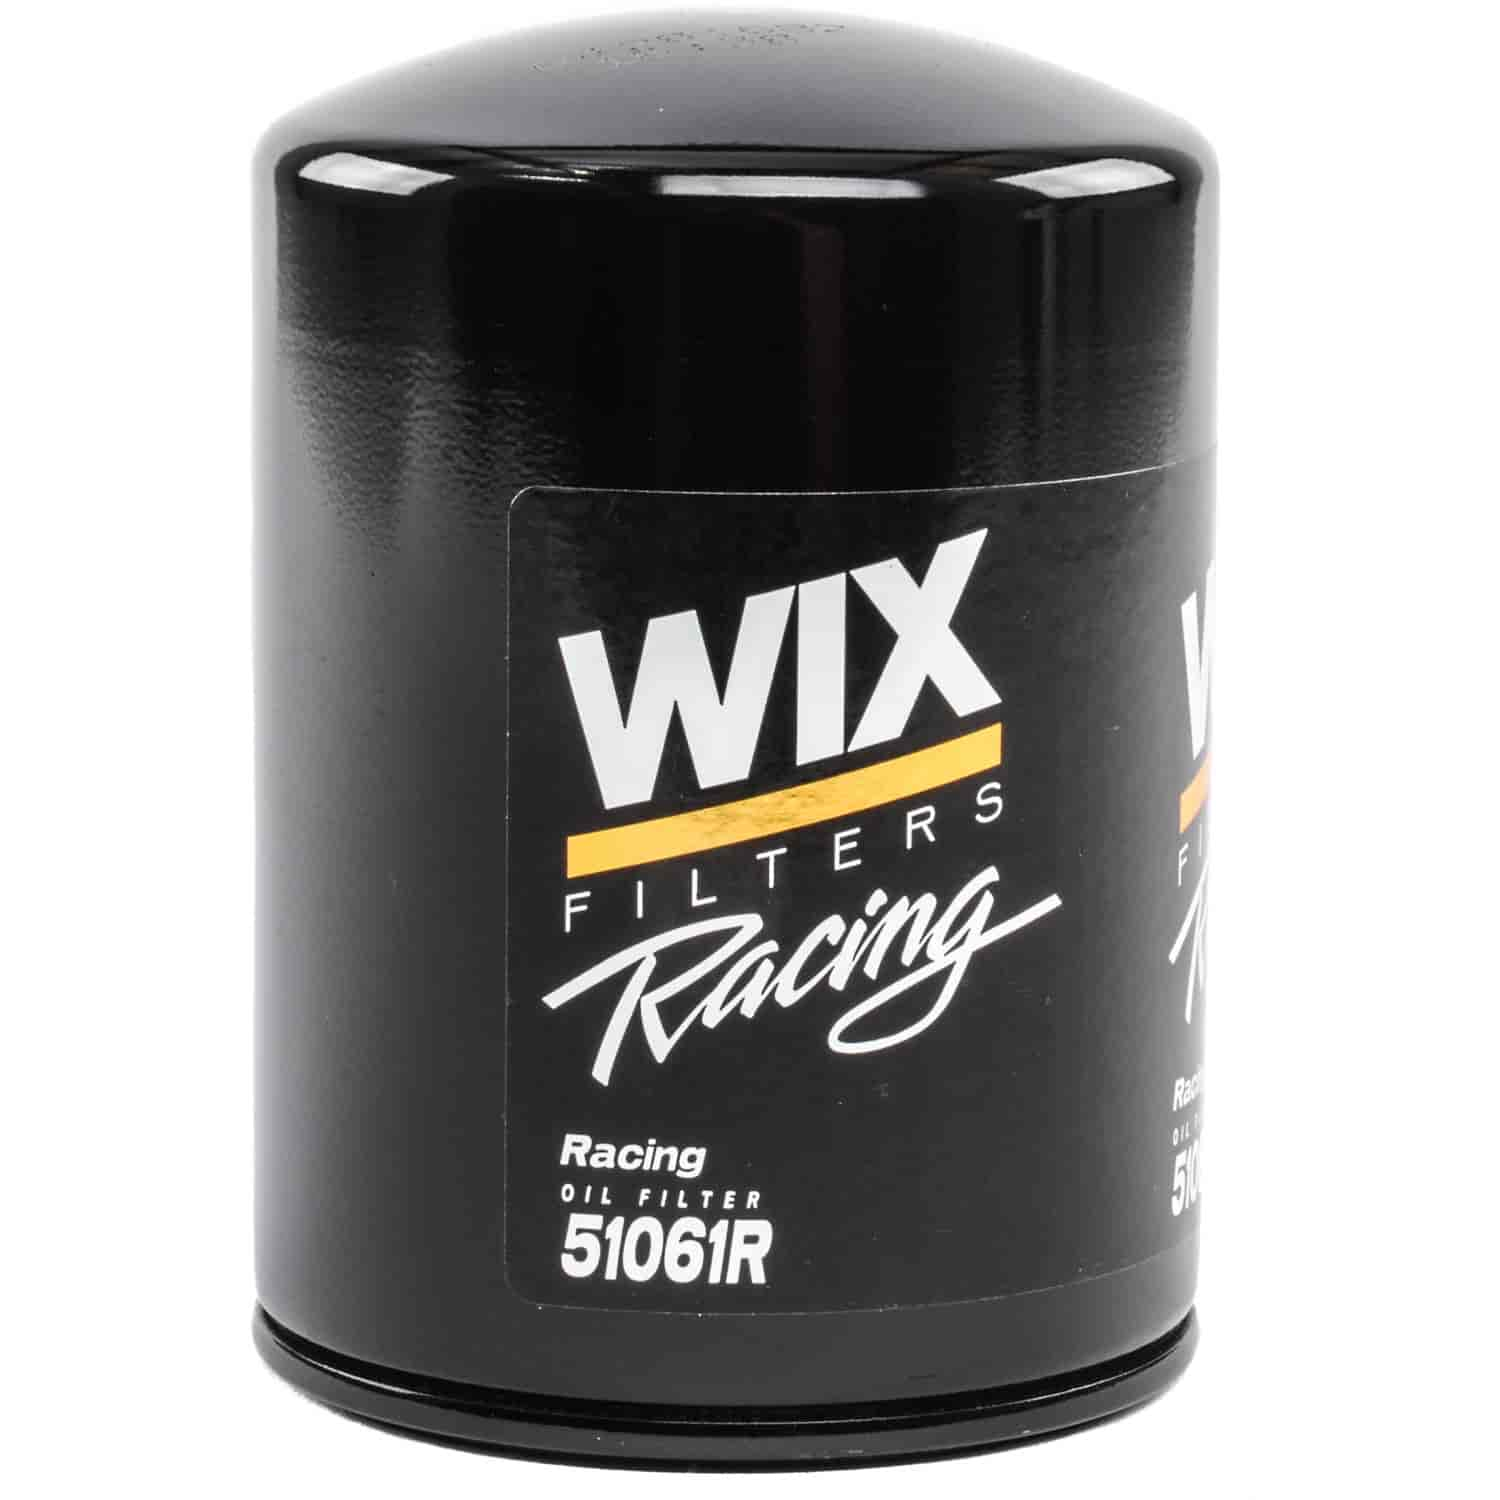 wix fuel filter catalog wix racing filters 51061r: wix racing oil filter height: 5 ...